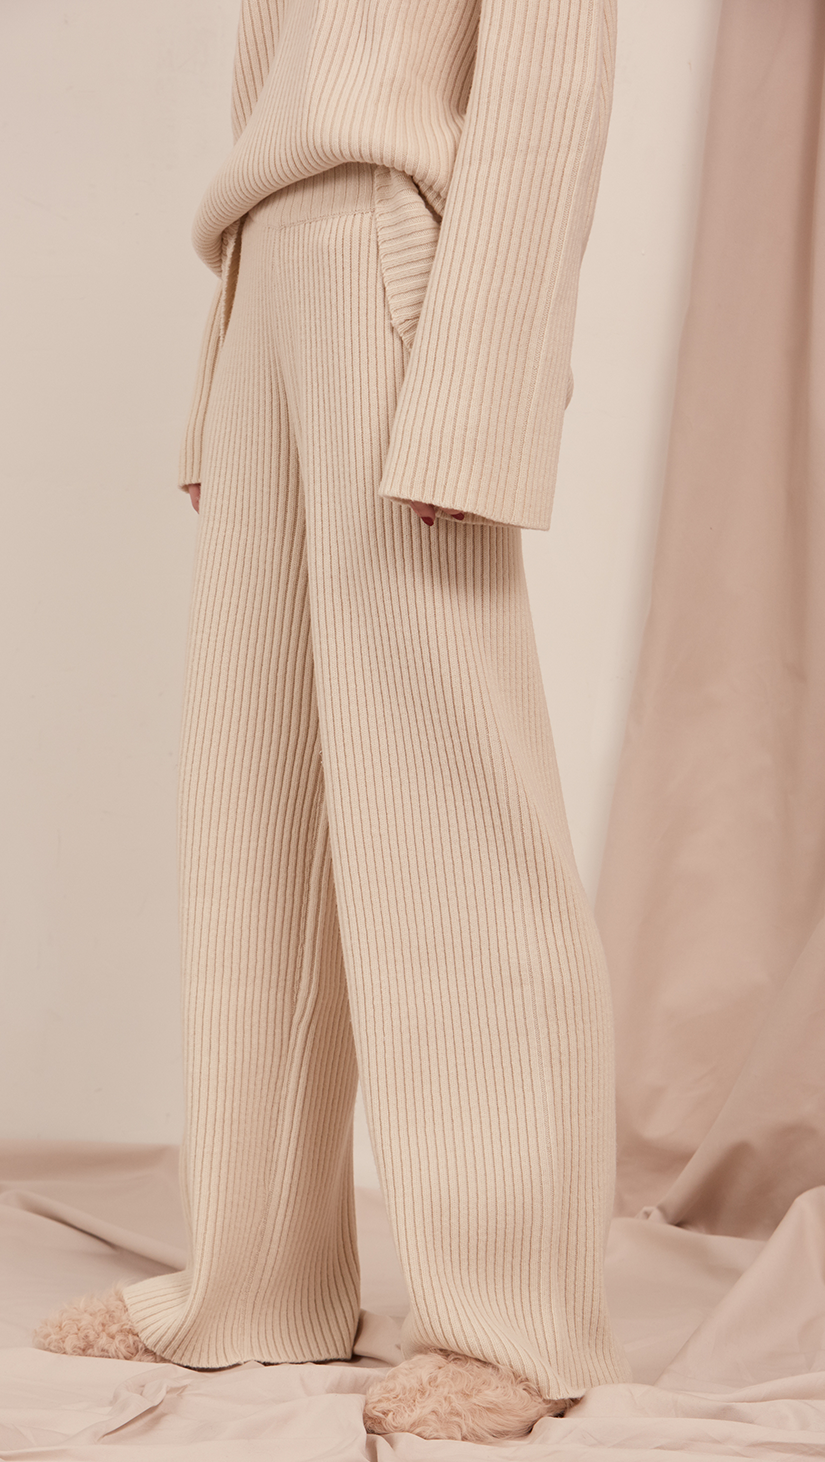 6d78d55c The Copen, superset knit flares in soft ivory. Soft, ribbed texture, wide